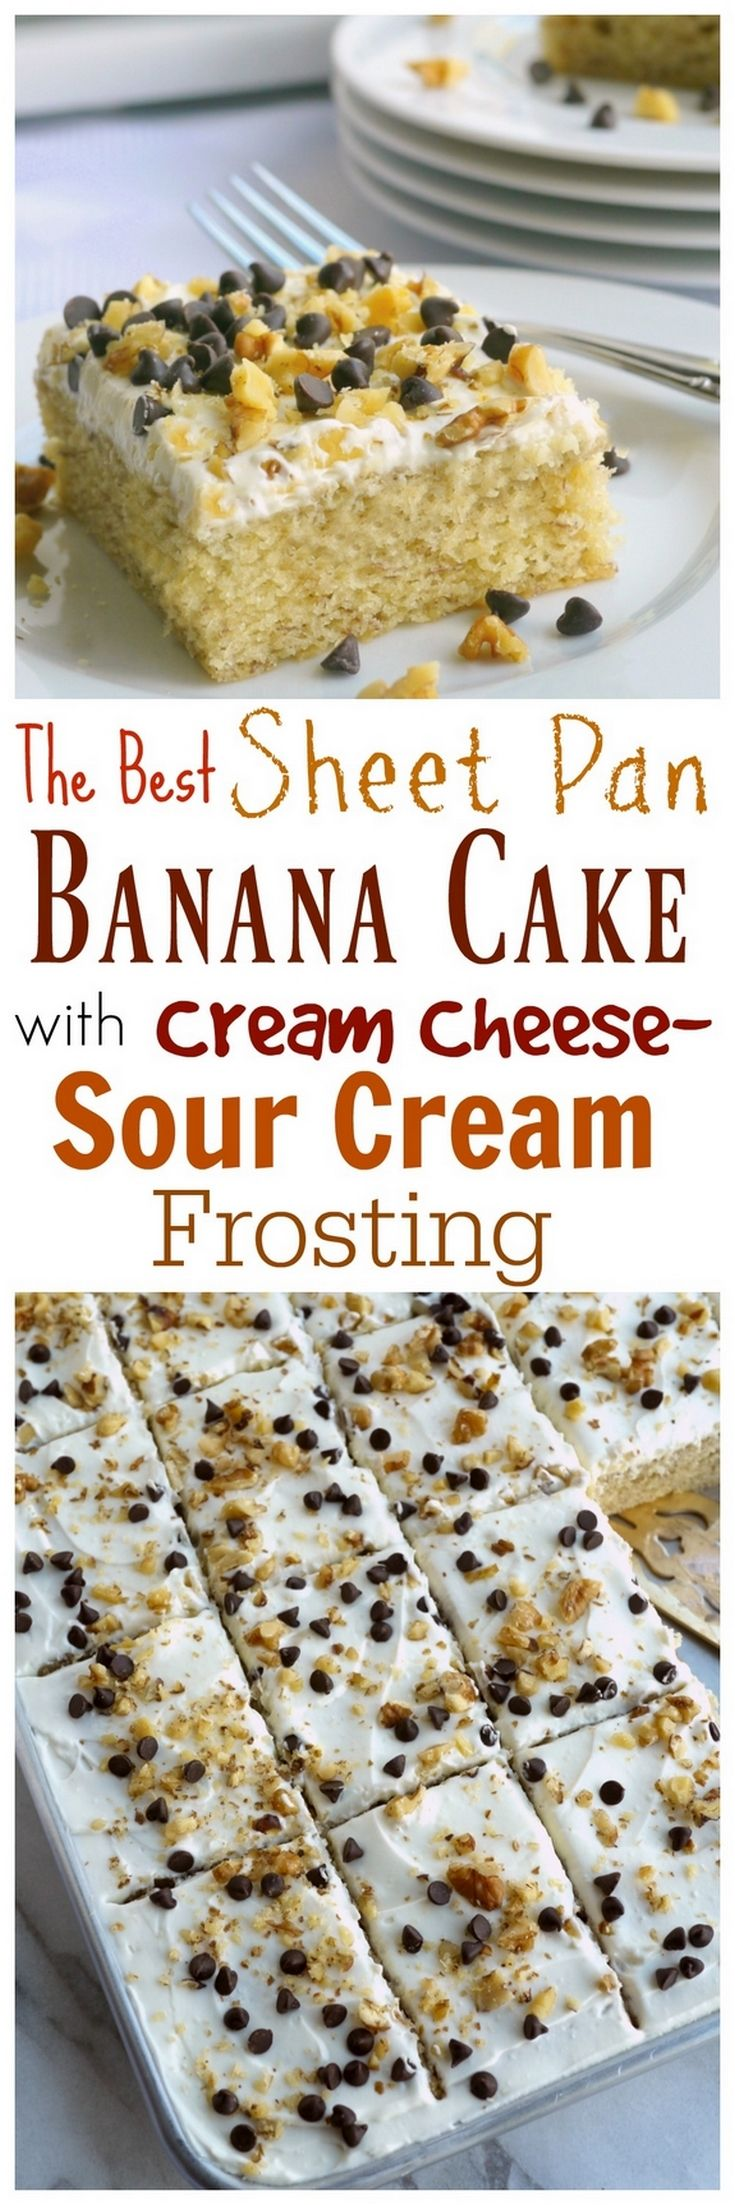 The Best Sheet Pan Banana Cake with Cream Cheese-Sour Cream Frosting is the perfect dessert to enjoy for your next gathering. 9 x 13 instructions also available.   from NoblePig.com.